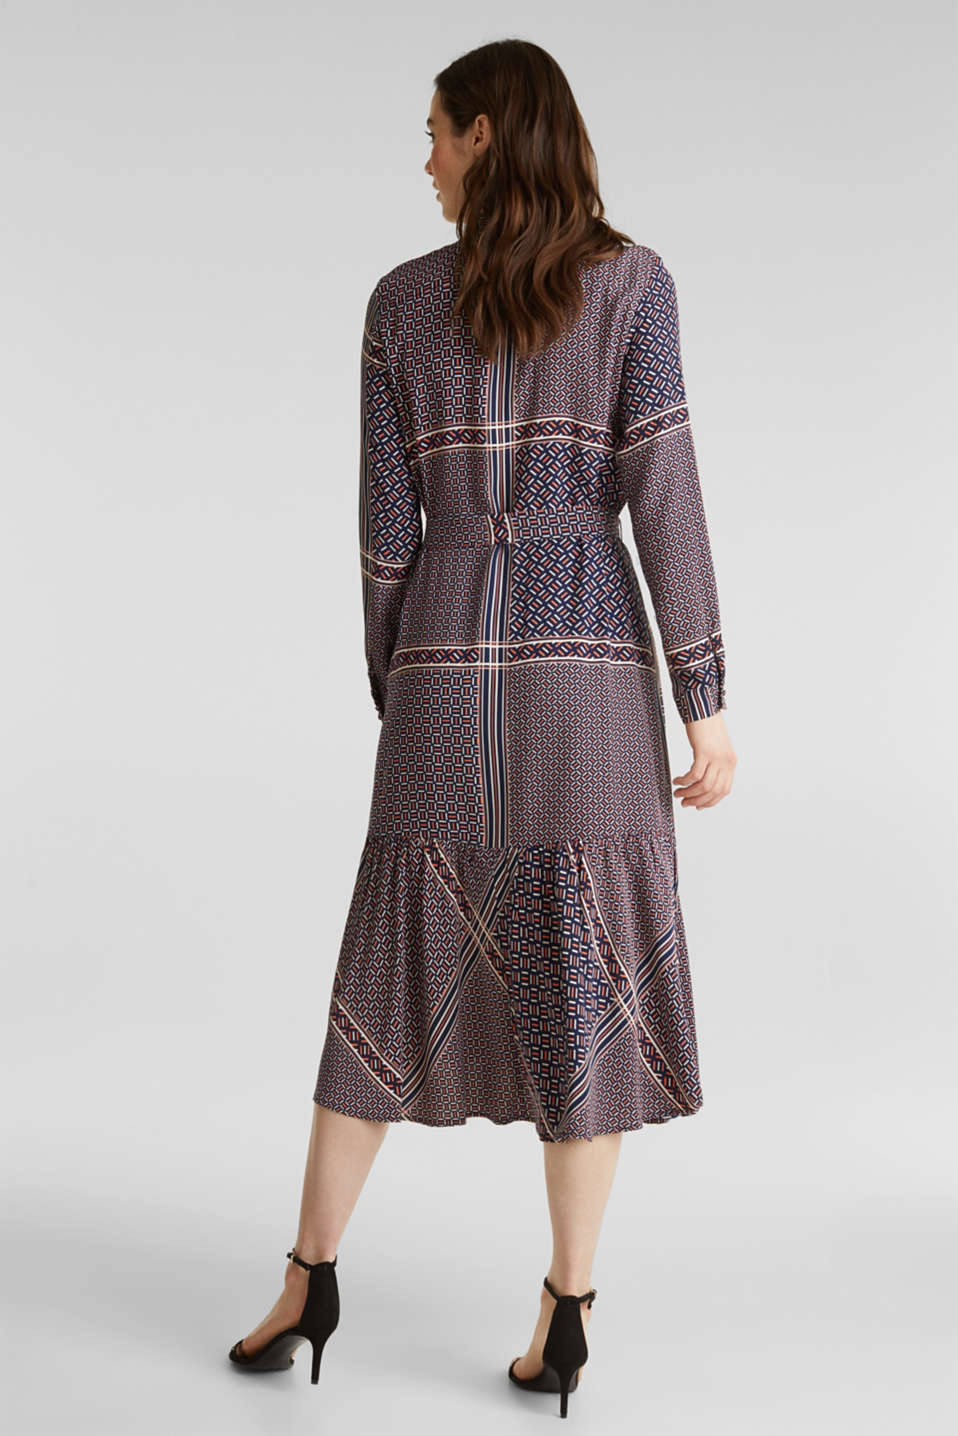 Midi dress with a modern tribal print, NAVY, detail image number 2